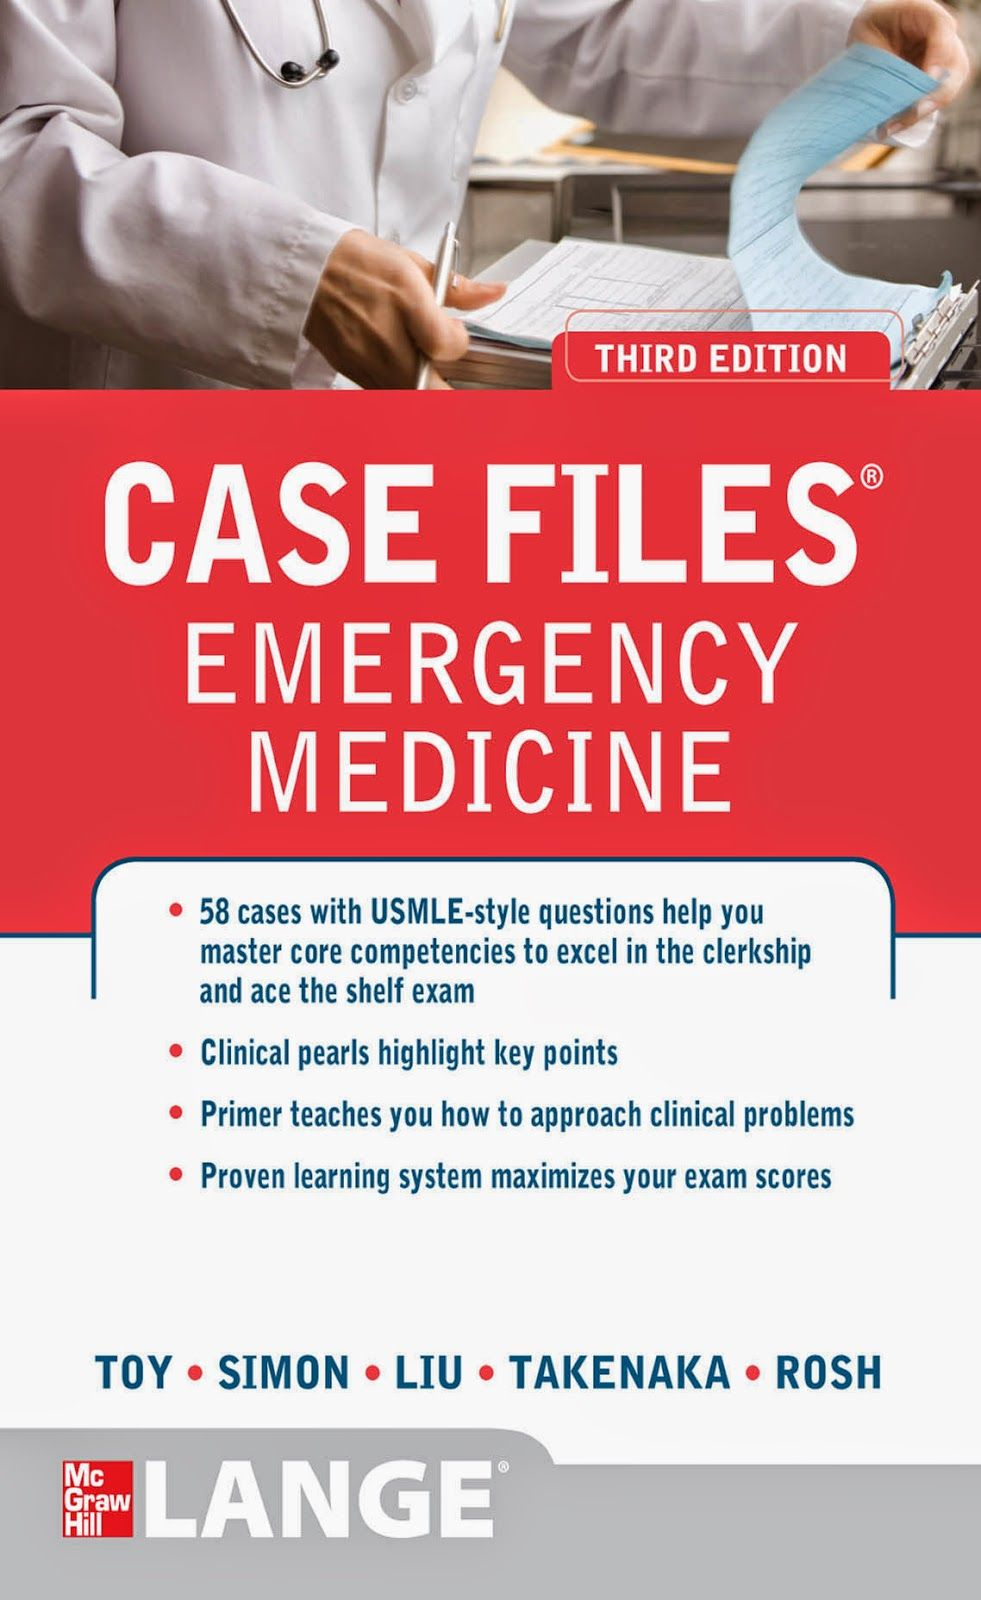 Case Files Emergency Medicine 3rd Edition Pdf Free Pdf Epub Medical Books Emergency Medicine Medicine Book Medicine